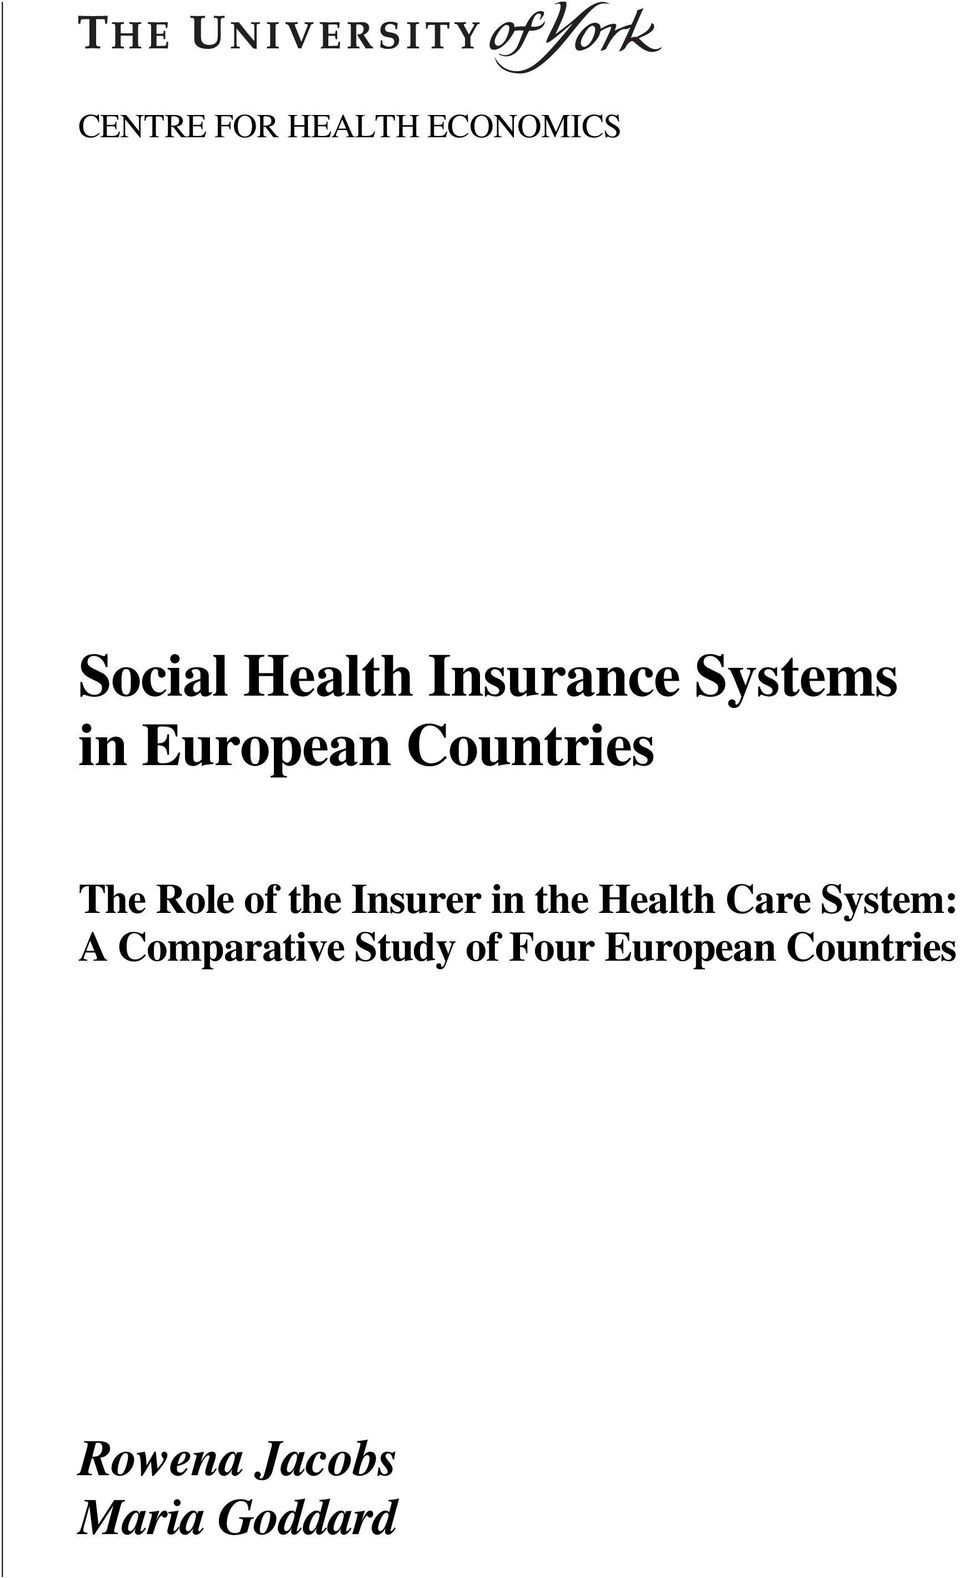 Insurer in the Health Care System: A Comparative